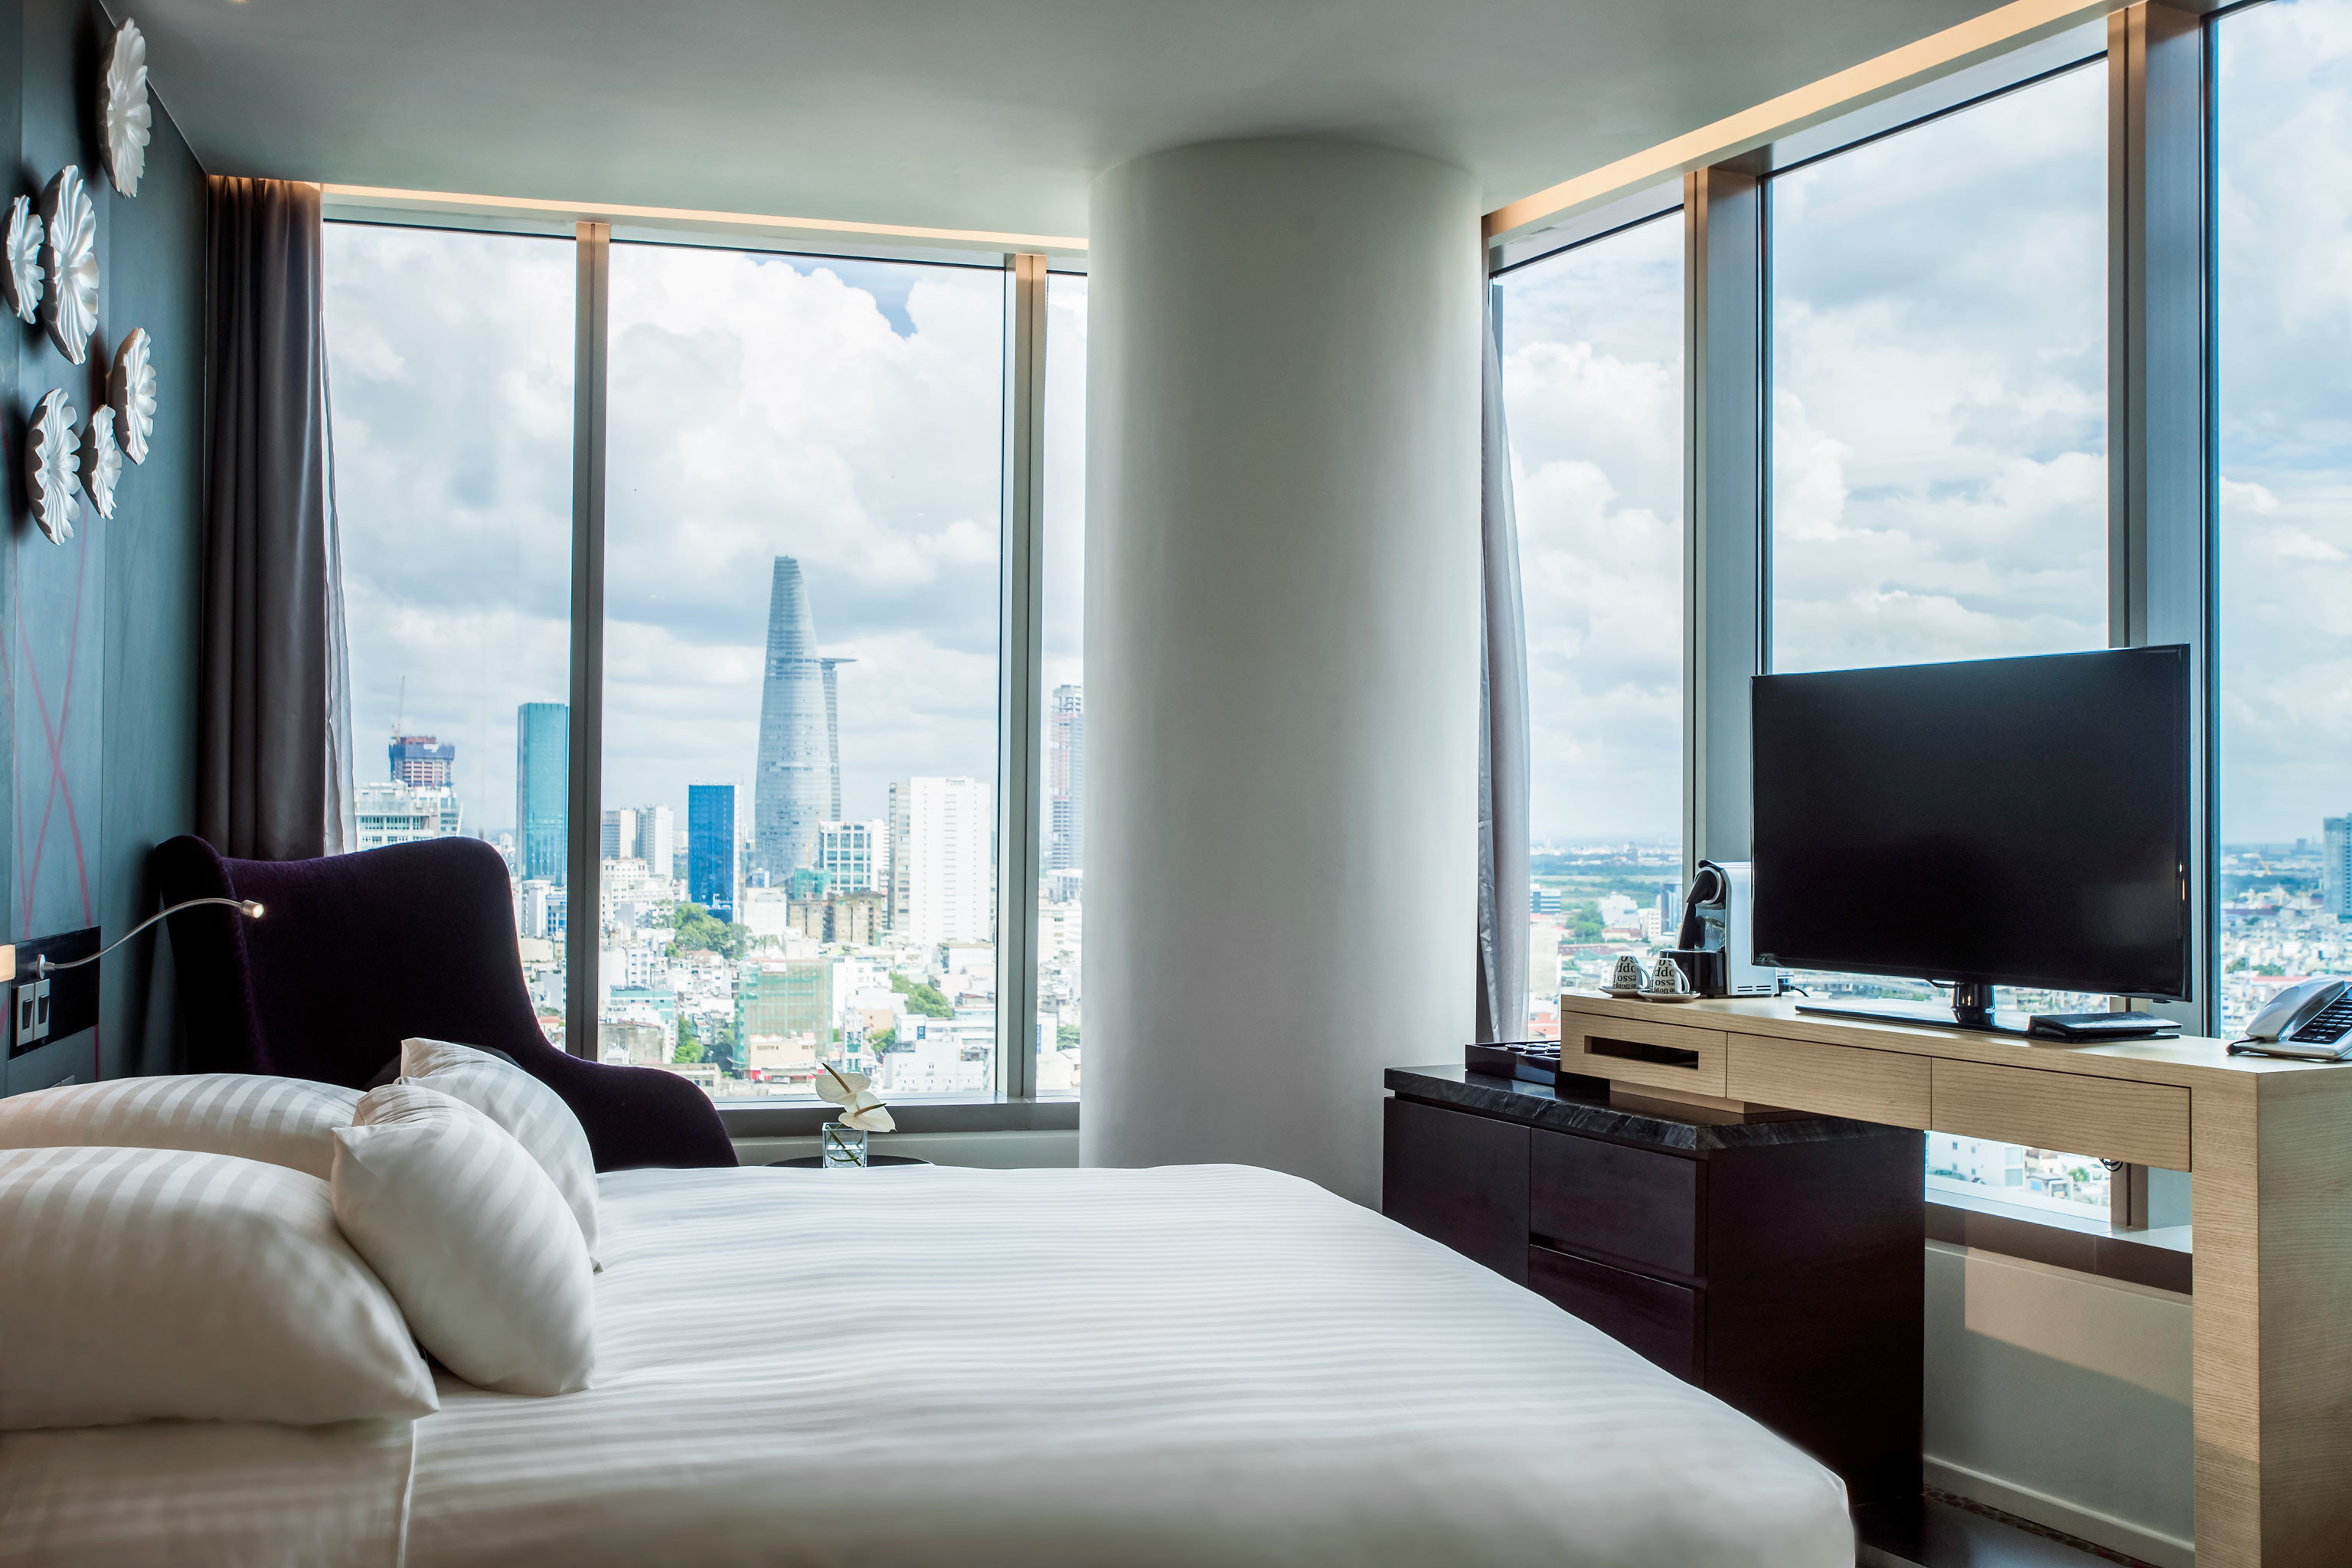 Bedroom City Modern Resort Scenic views sofa living room property home house condominium Suite